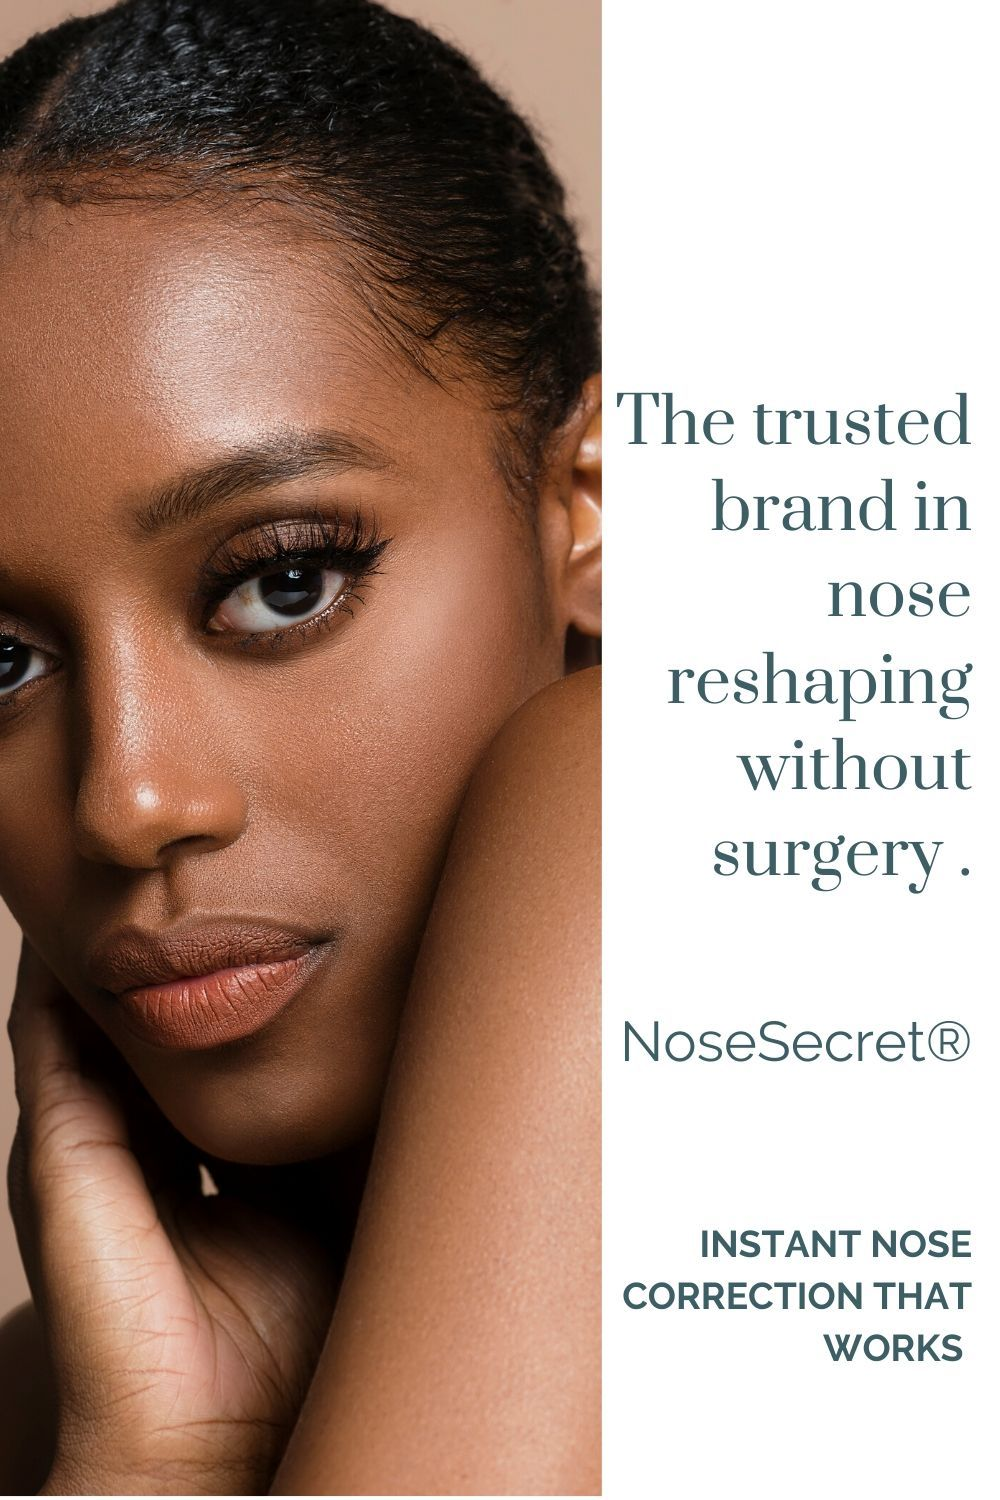 If you think surgery is the only way to reshape your nose